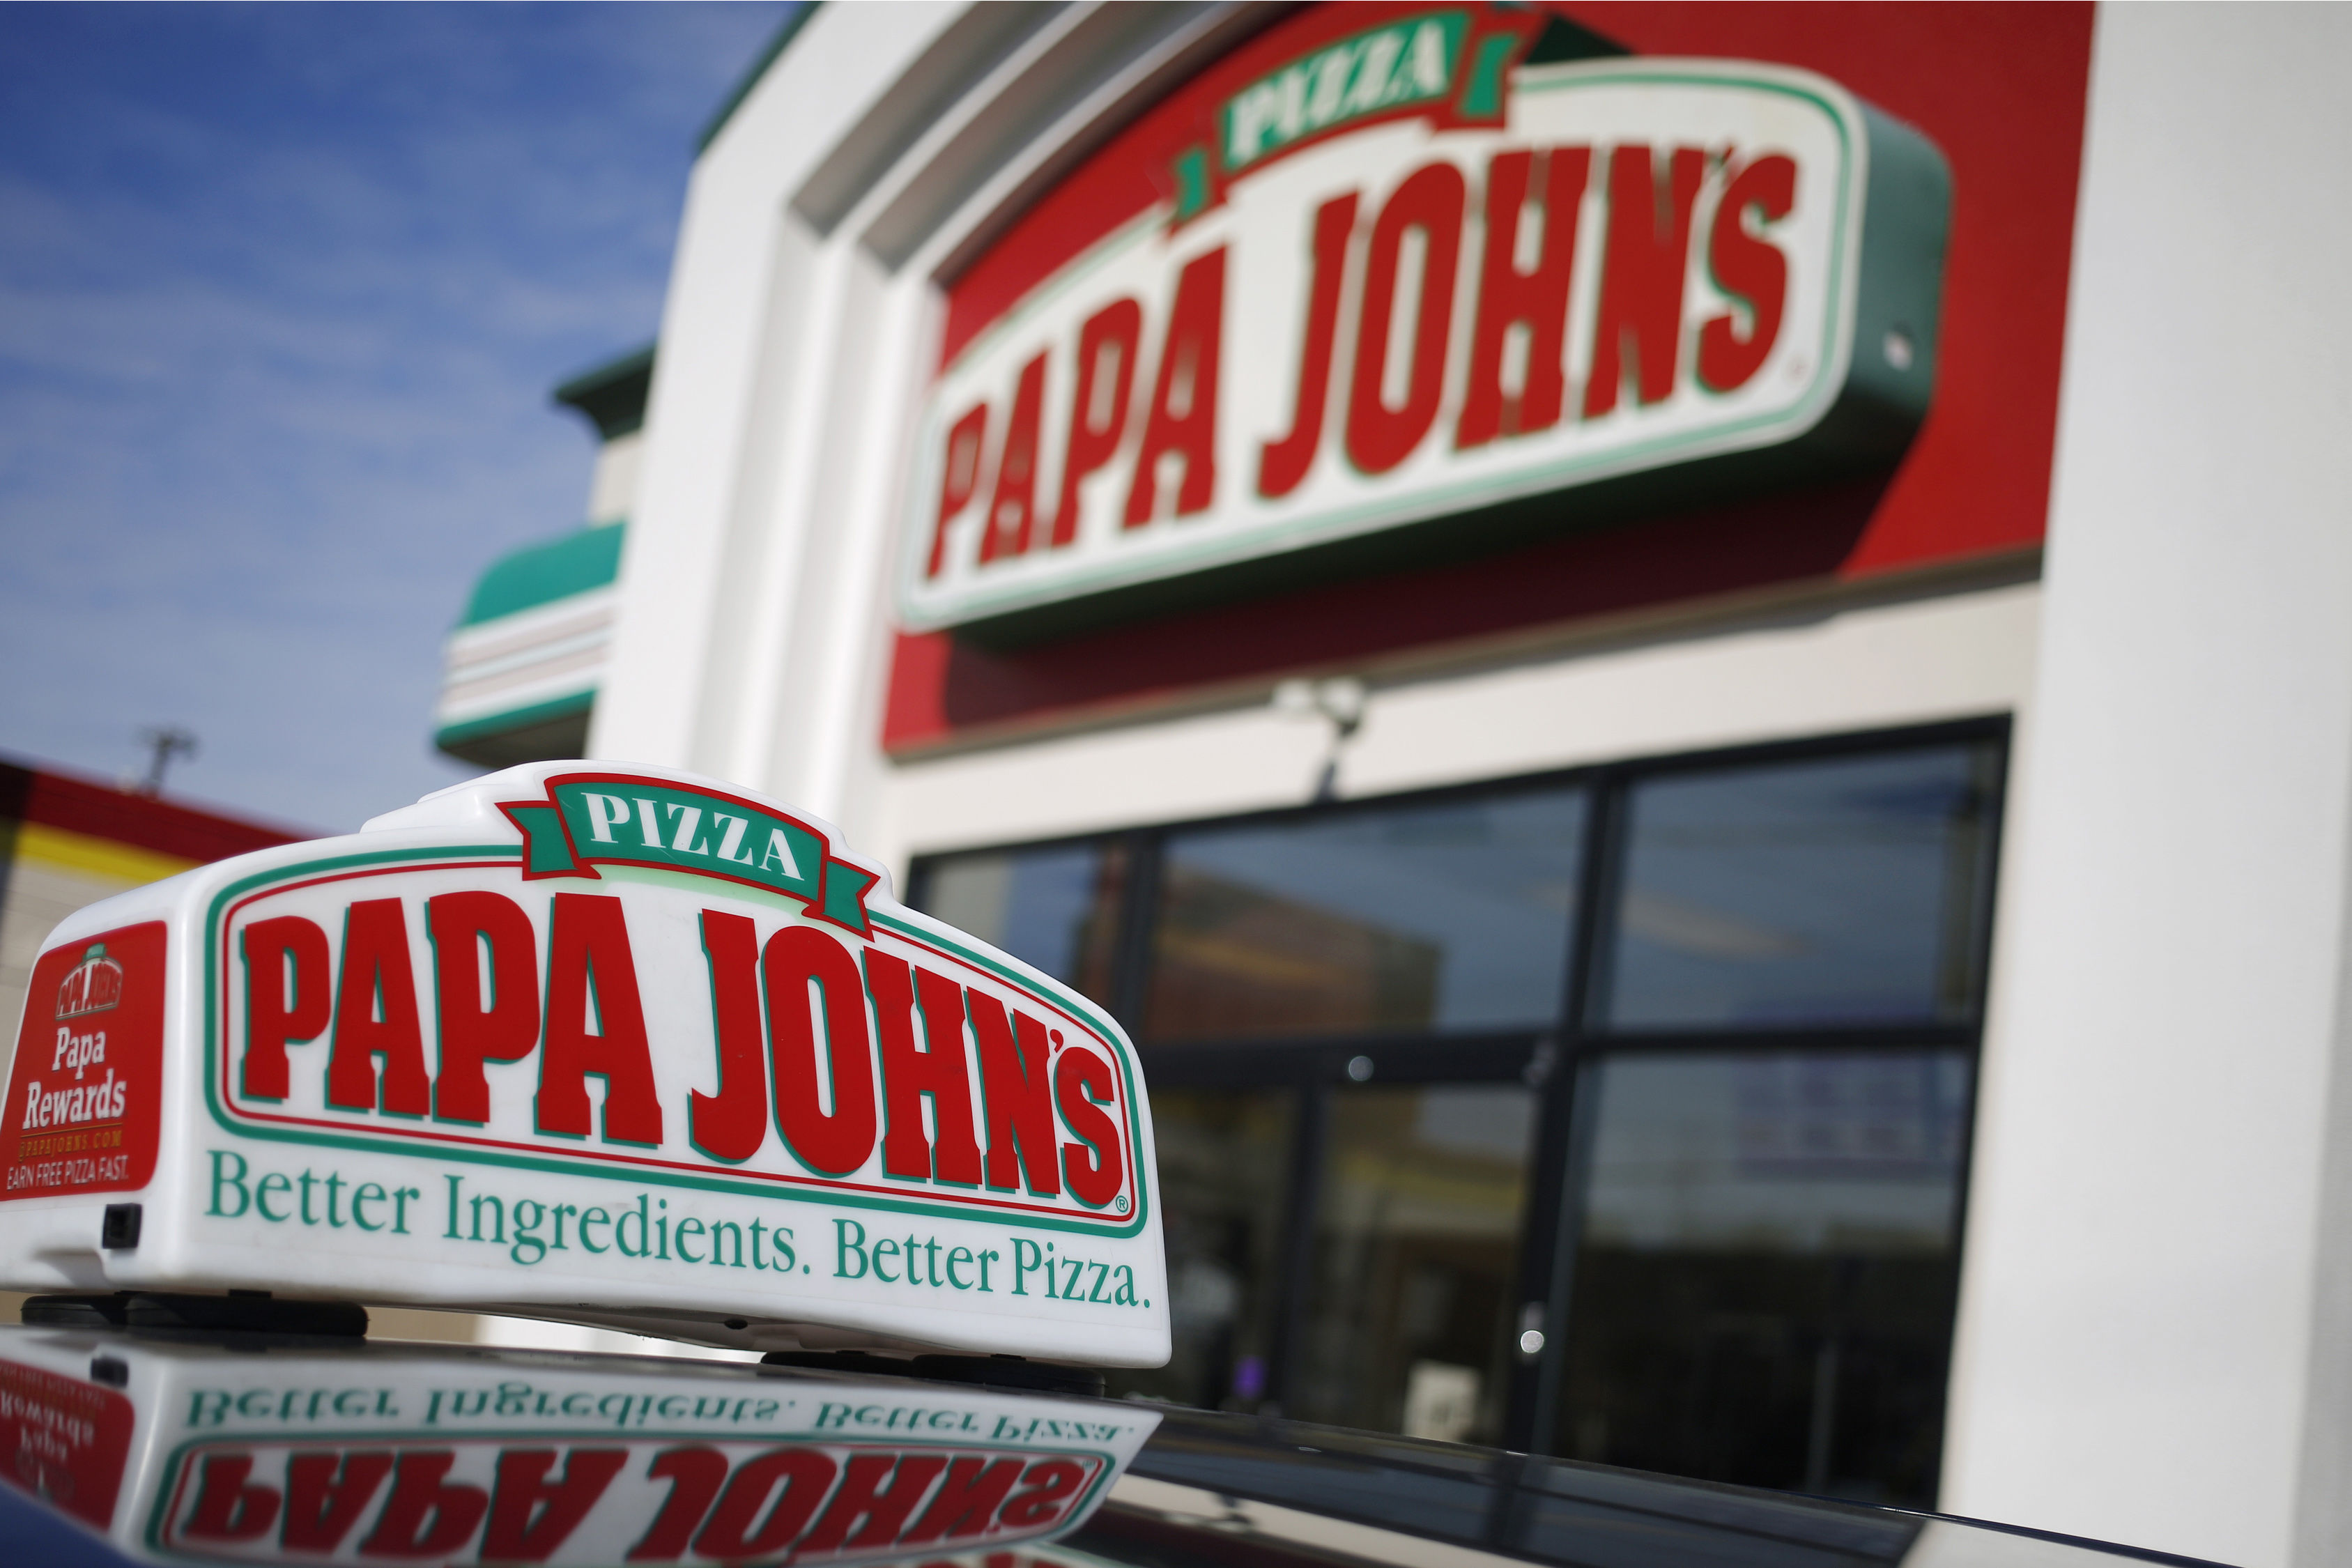 The One Pizza You Should Never Order from Papa Johns, According to a Former Employee